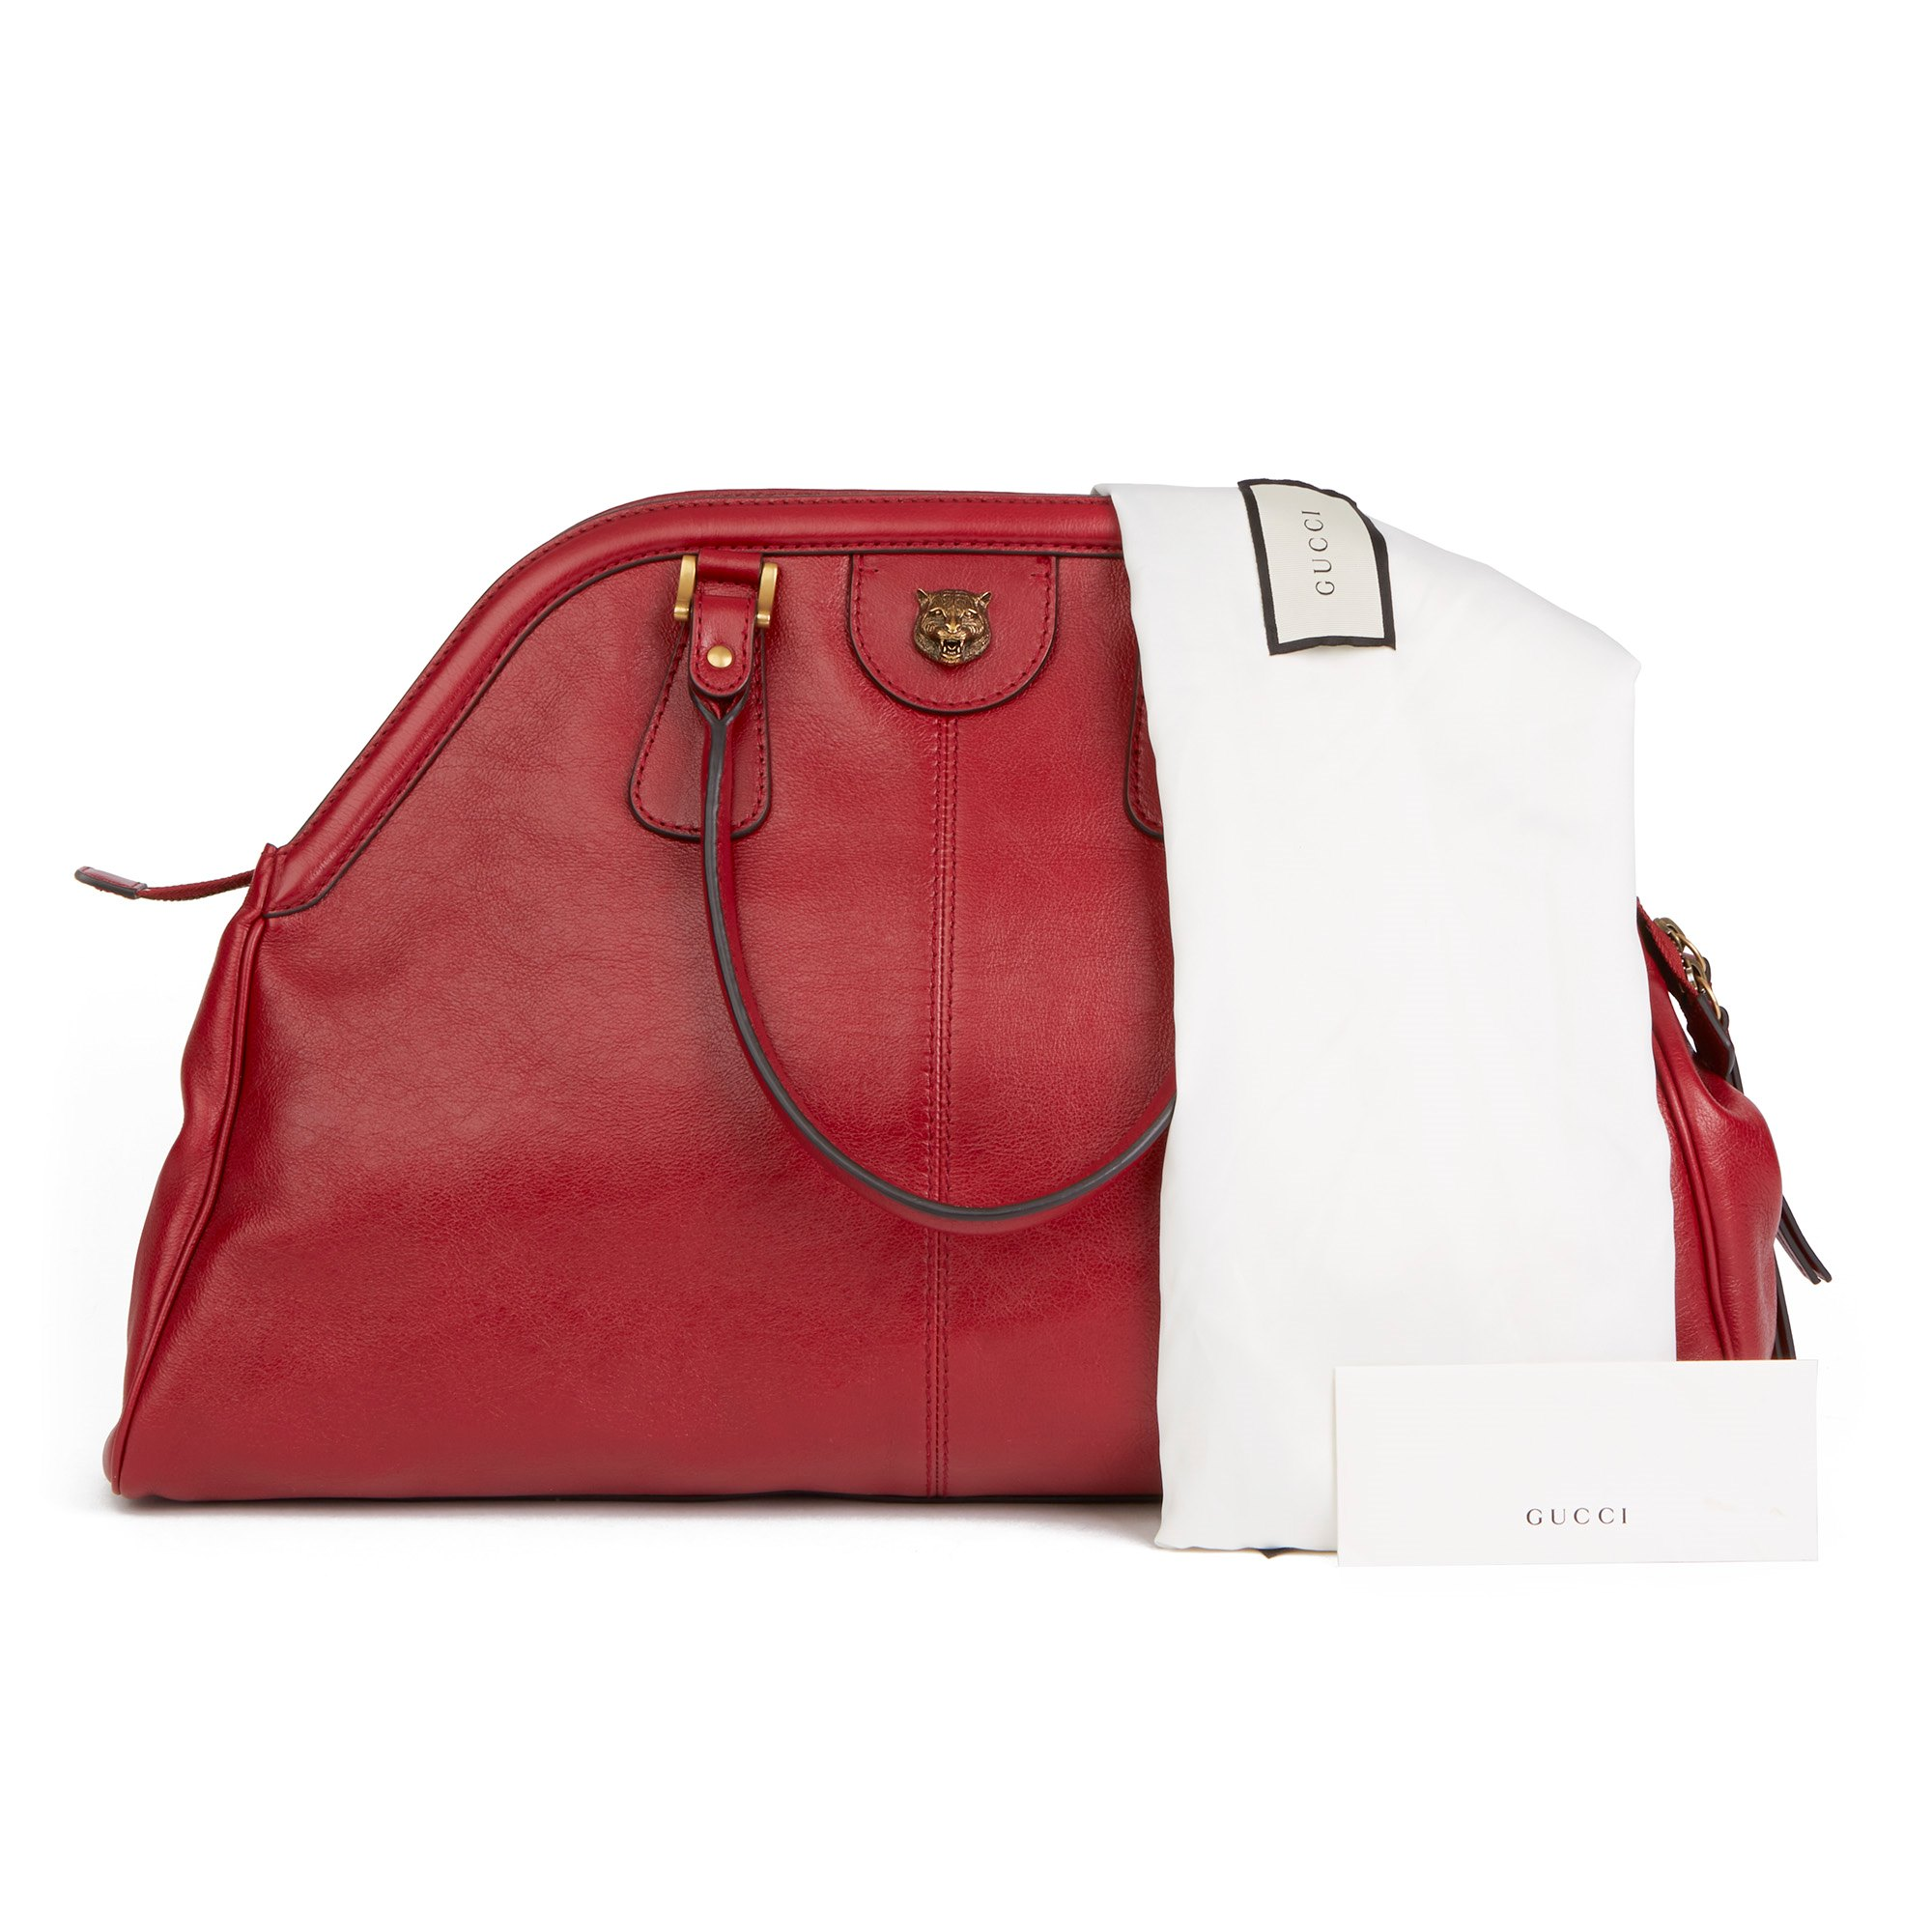 Gucci Red Aged Calfskin Large Marmont Re (Belle) Tote